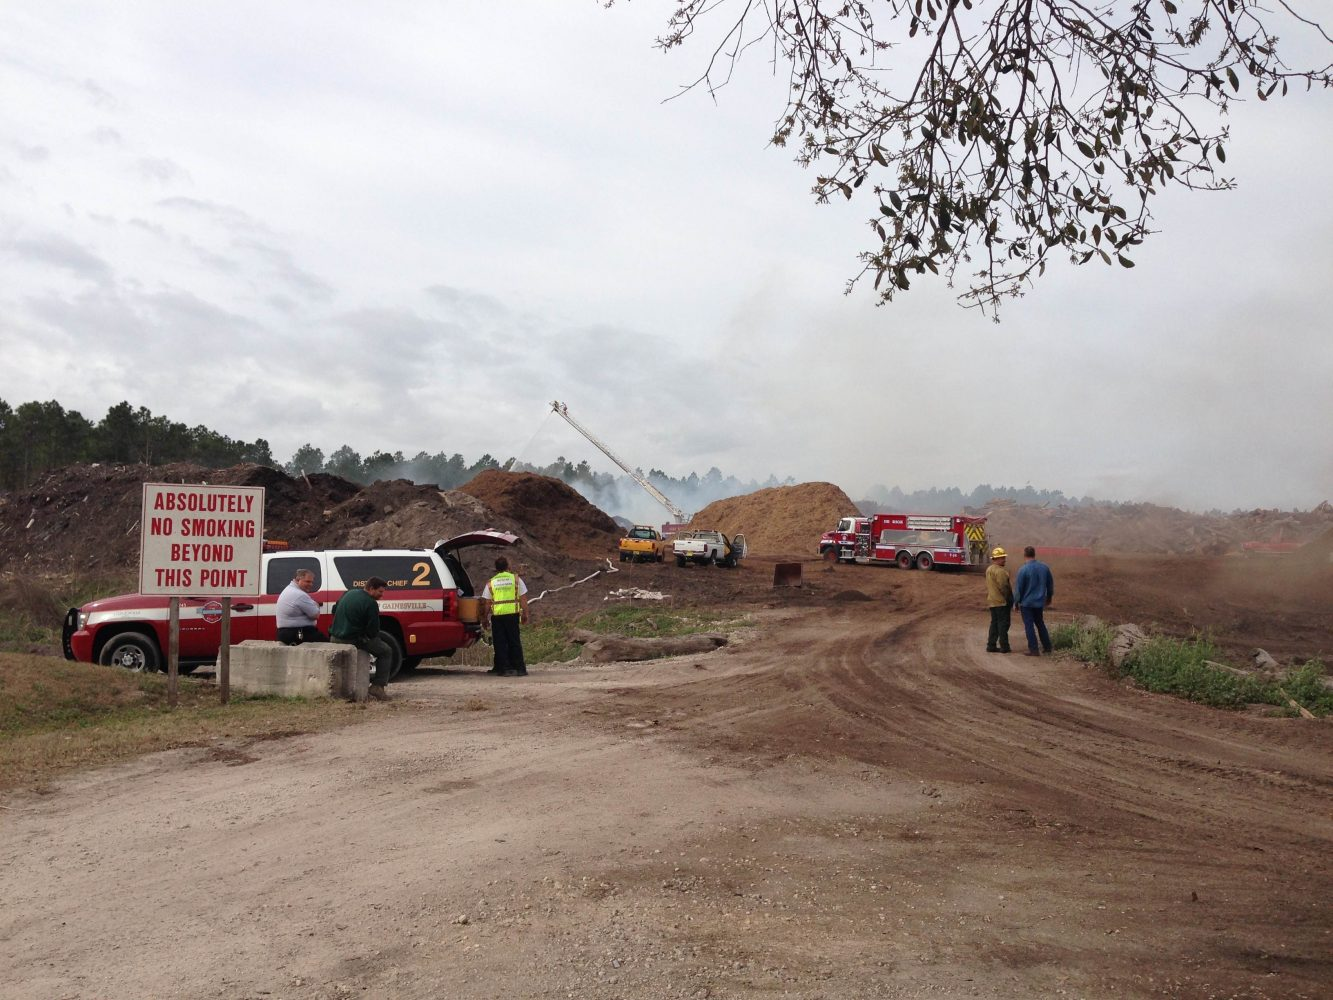 Caution advised for possible smoke on SR 121, US 441 – WUFT News